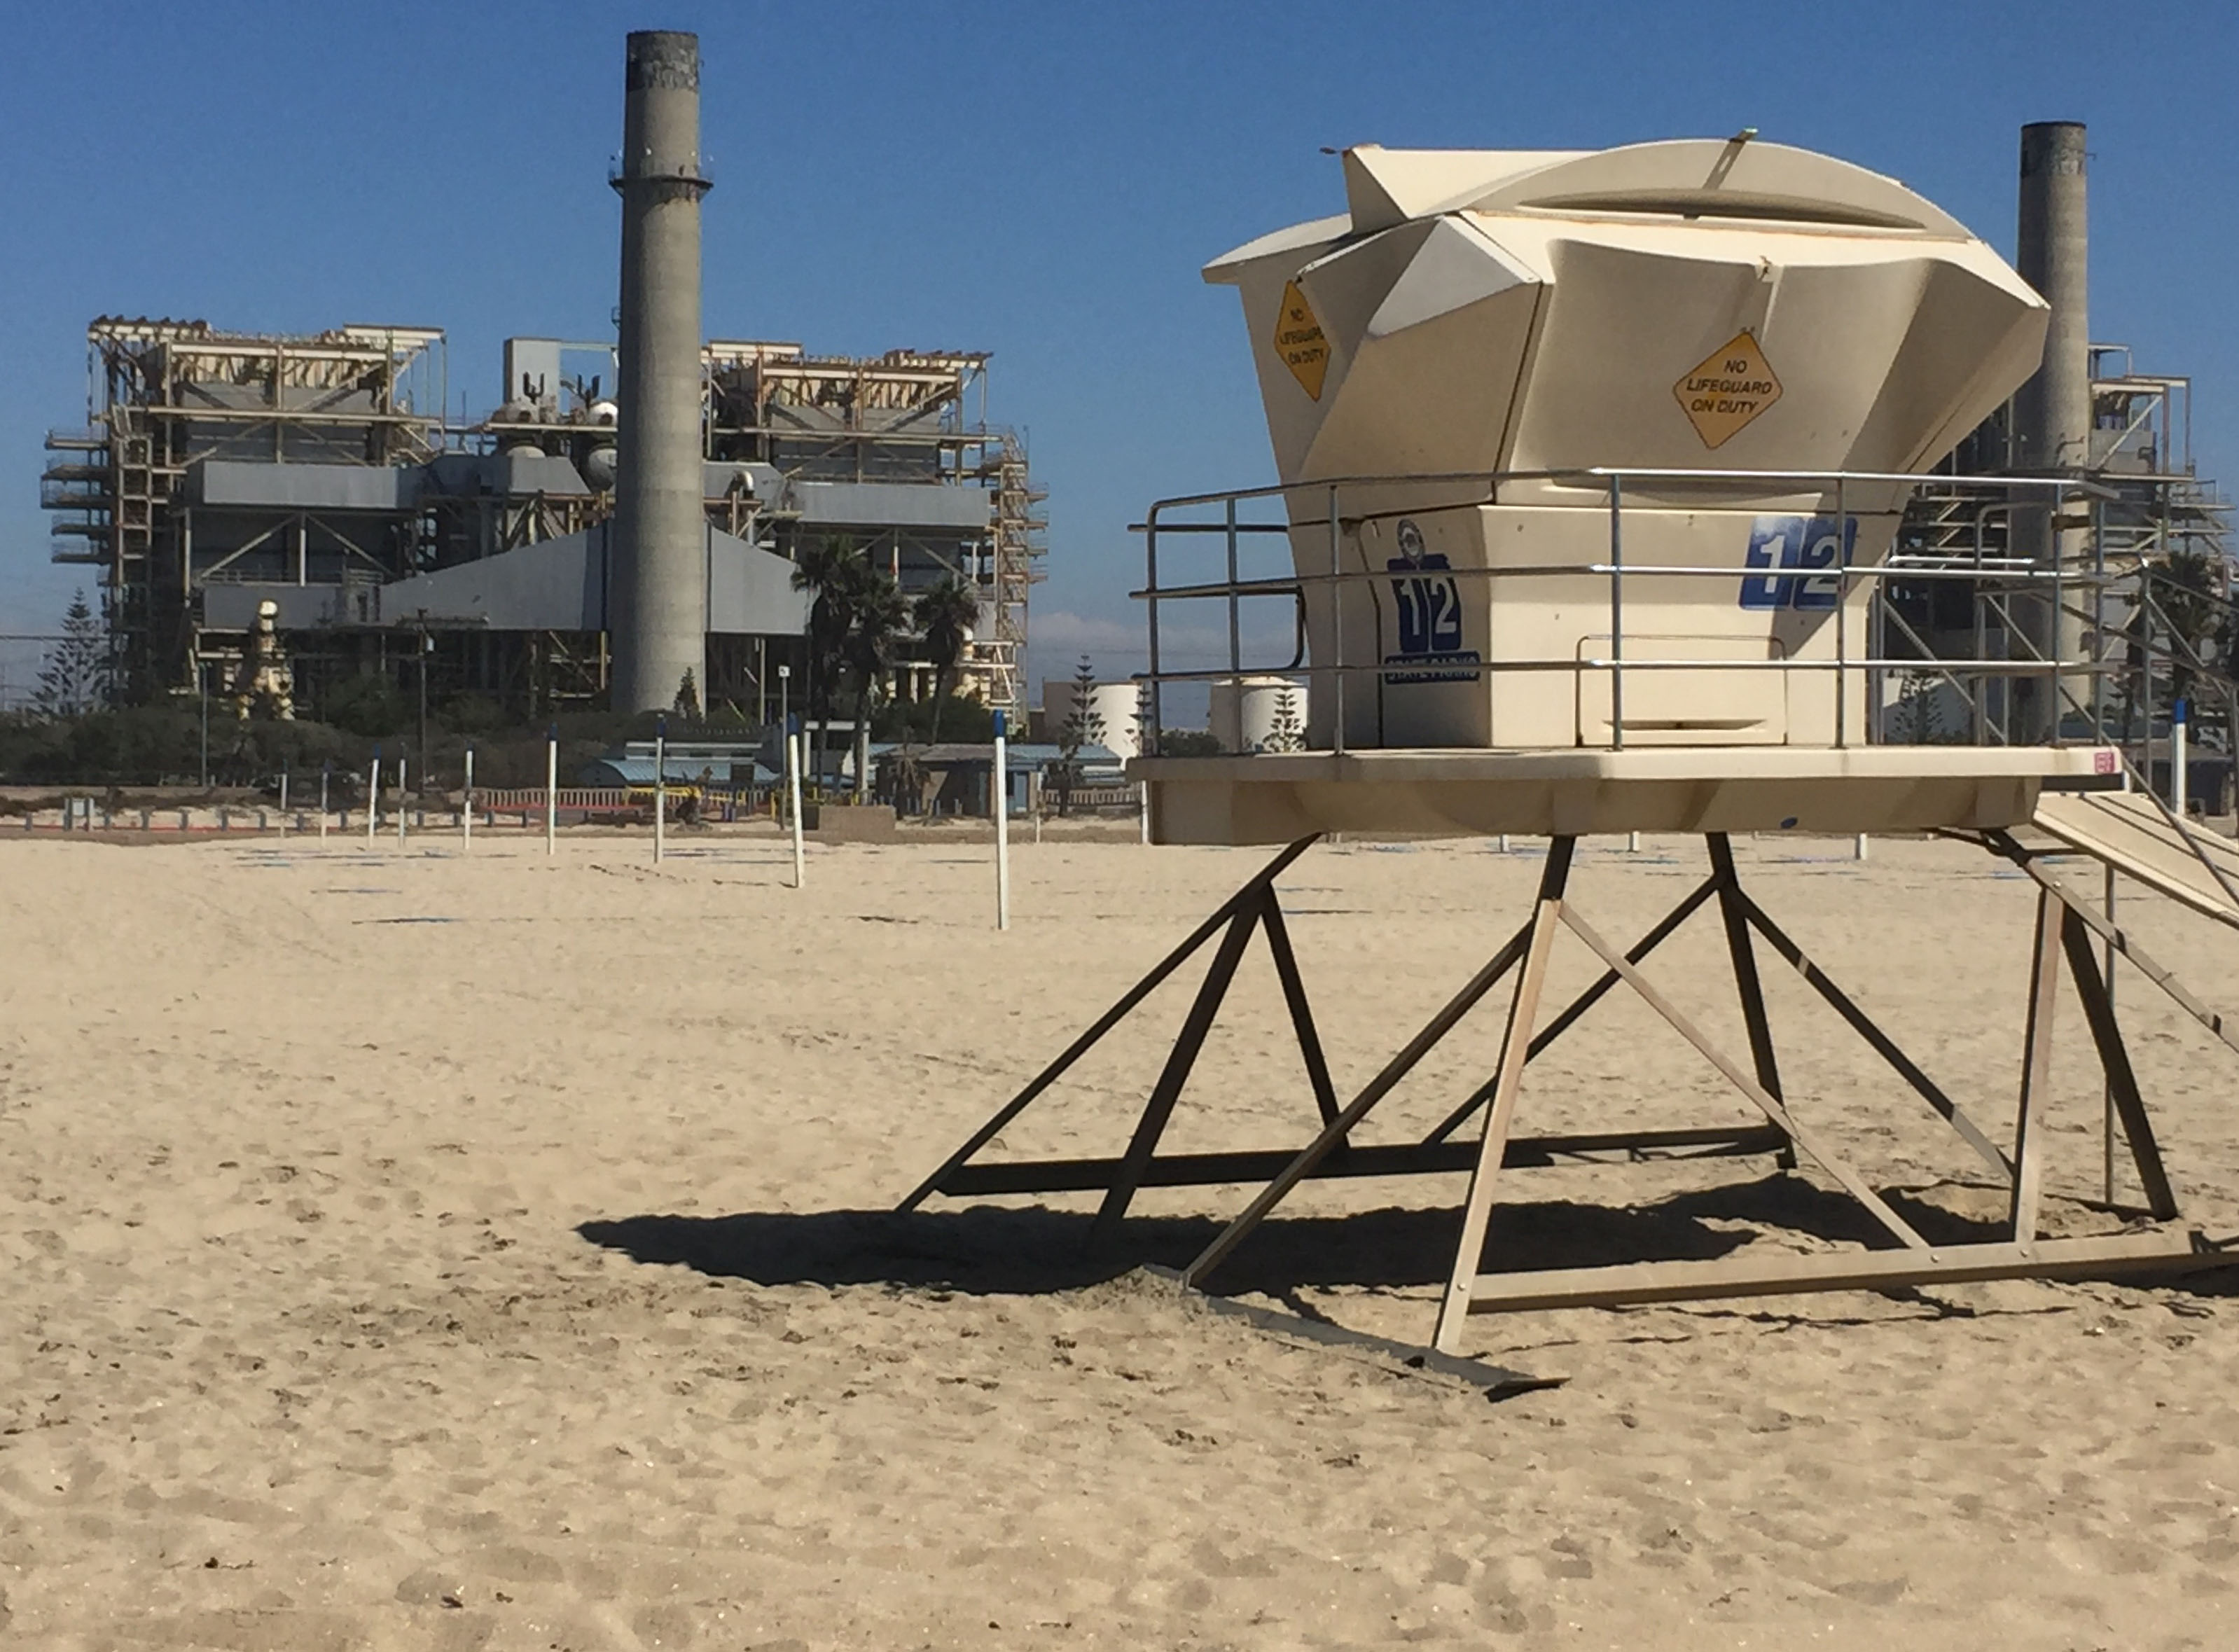 The proposed Huntington Beach desal plant would use the outflow pipe from the AES power plant (background) to deposit salt residue, known as brine, back into the ocean.